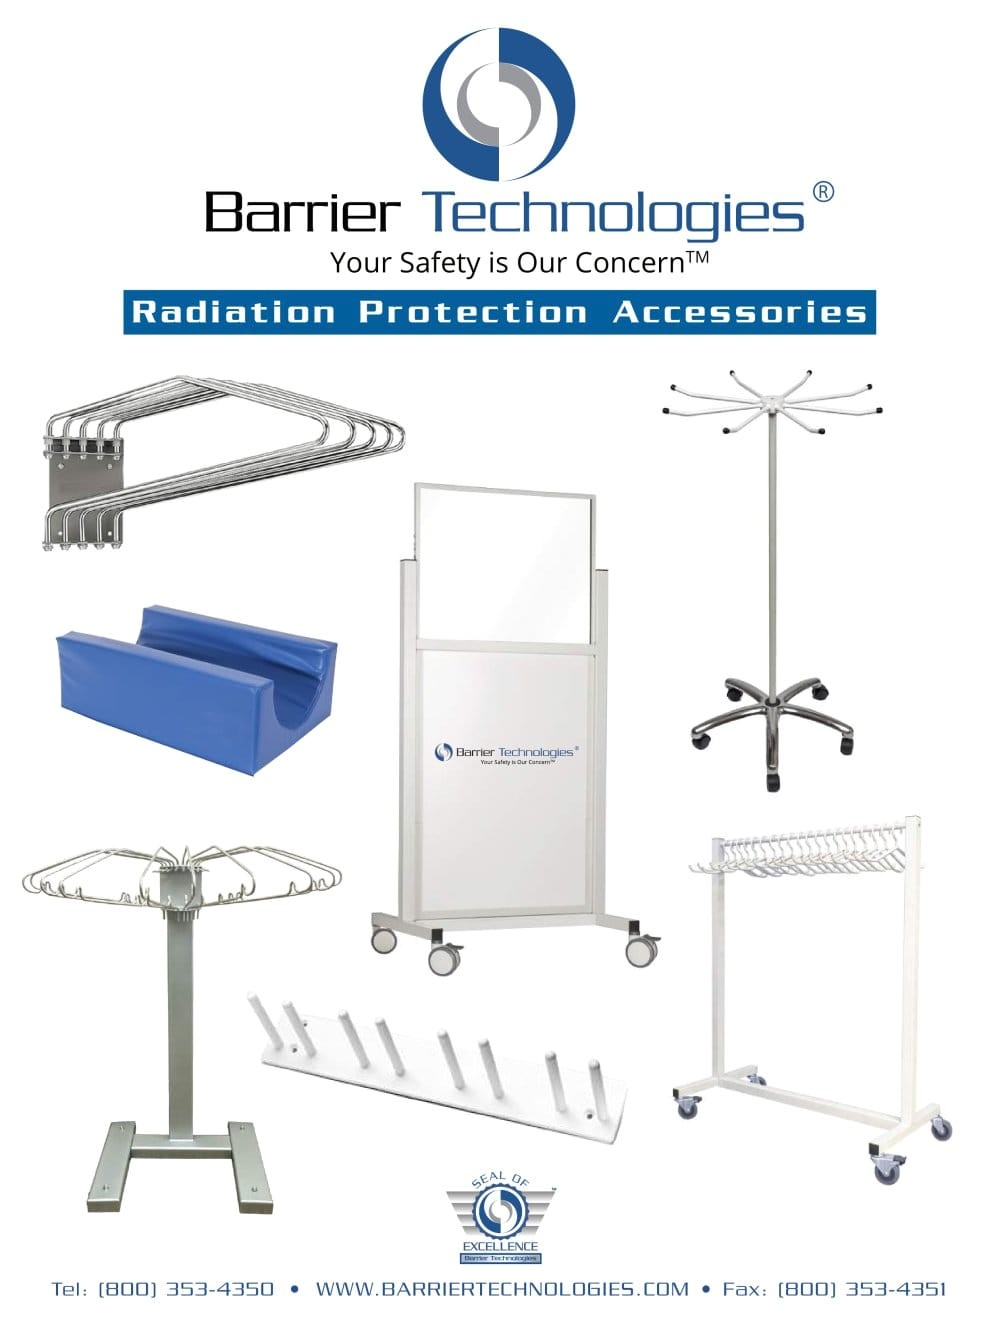 x ray accessories 1 6 pages